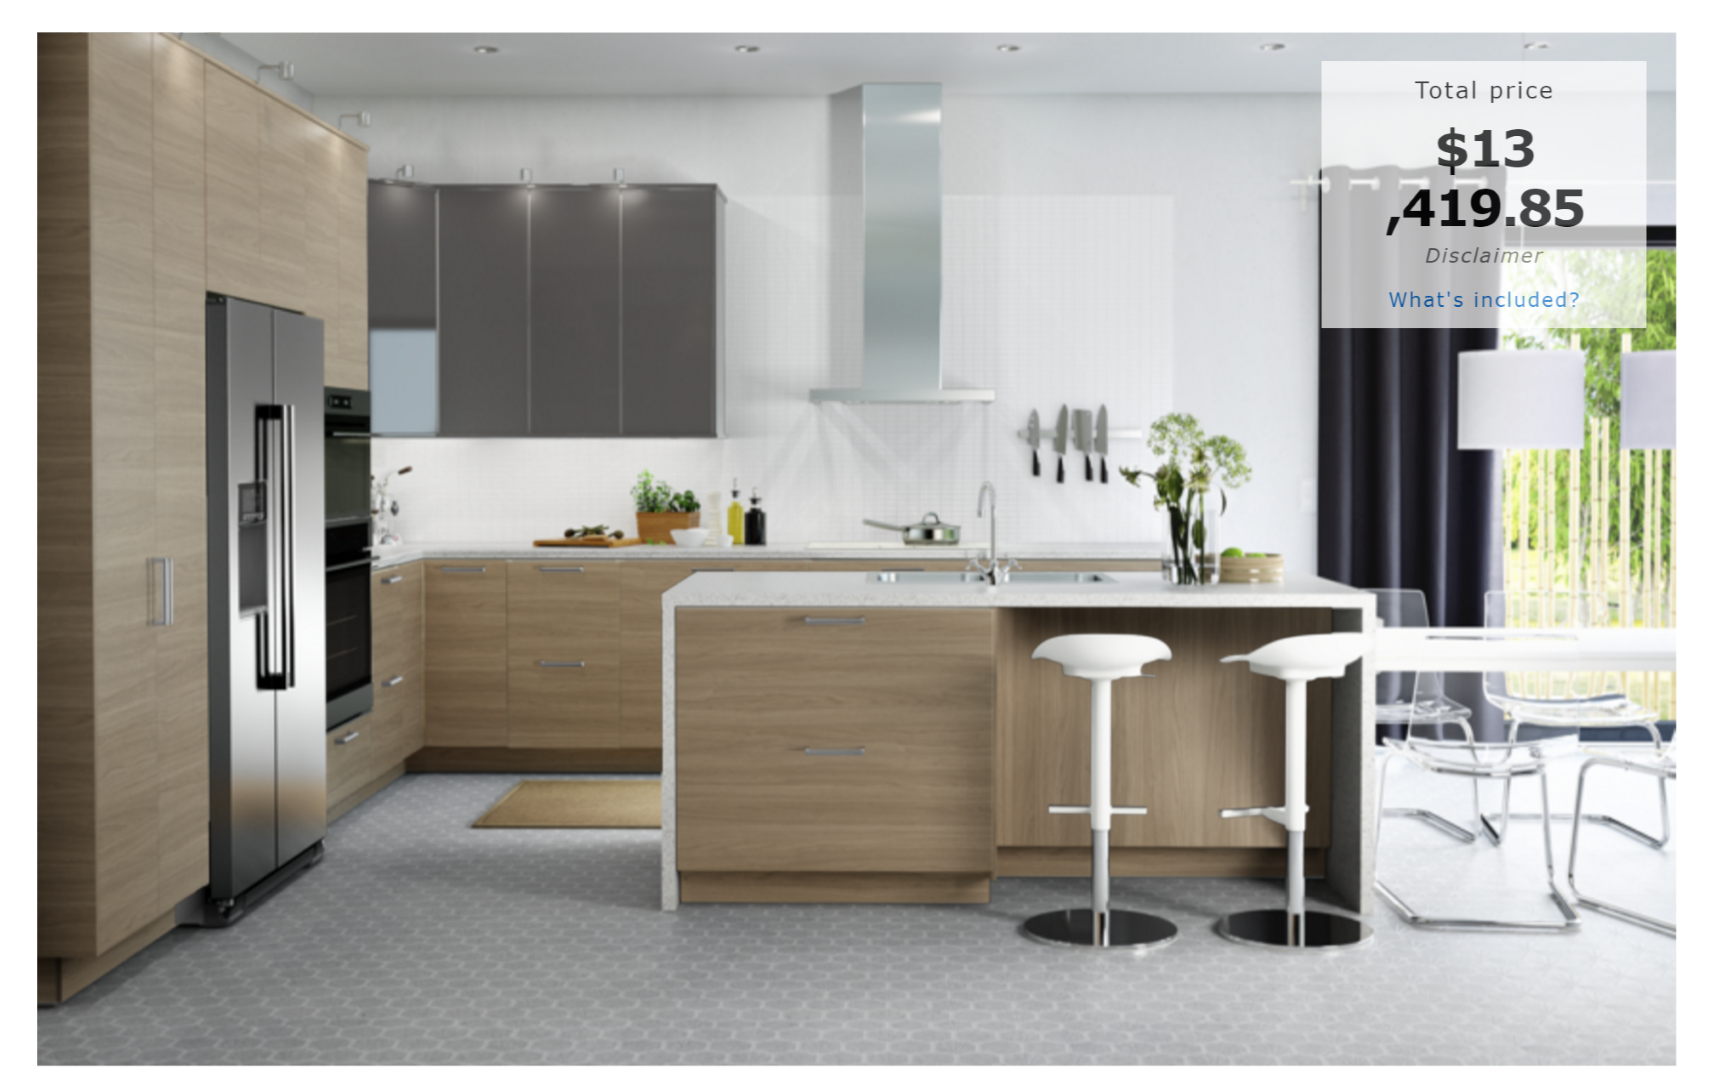 How Much Will an IKEA Kitchen Cost? Cost Of Ikea Kitchen on cost of furniture, cost of redoing a kitchen, cost of kitchen cabinets, cost of undermount kitchen sinks, cost of kitchen islands, cost of ceramic tile, cost of kitchen backsplash, cost of small kitchen remodeling,